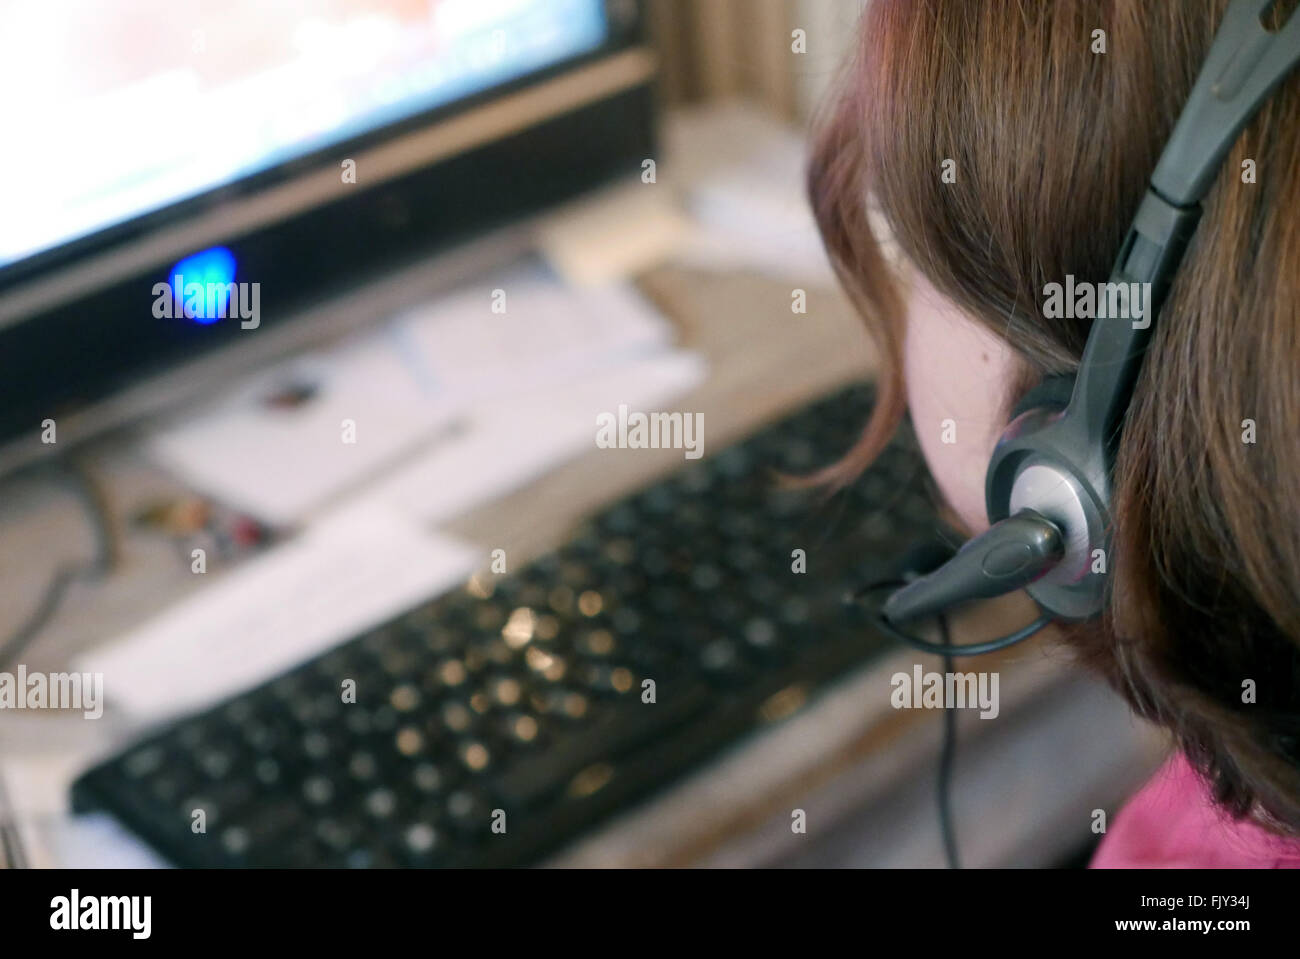 Woman Wearing Headset And Using Computer - Stock Image